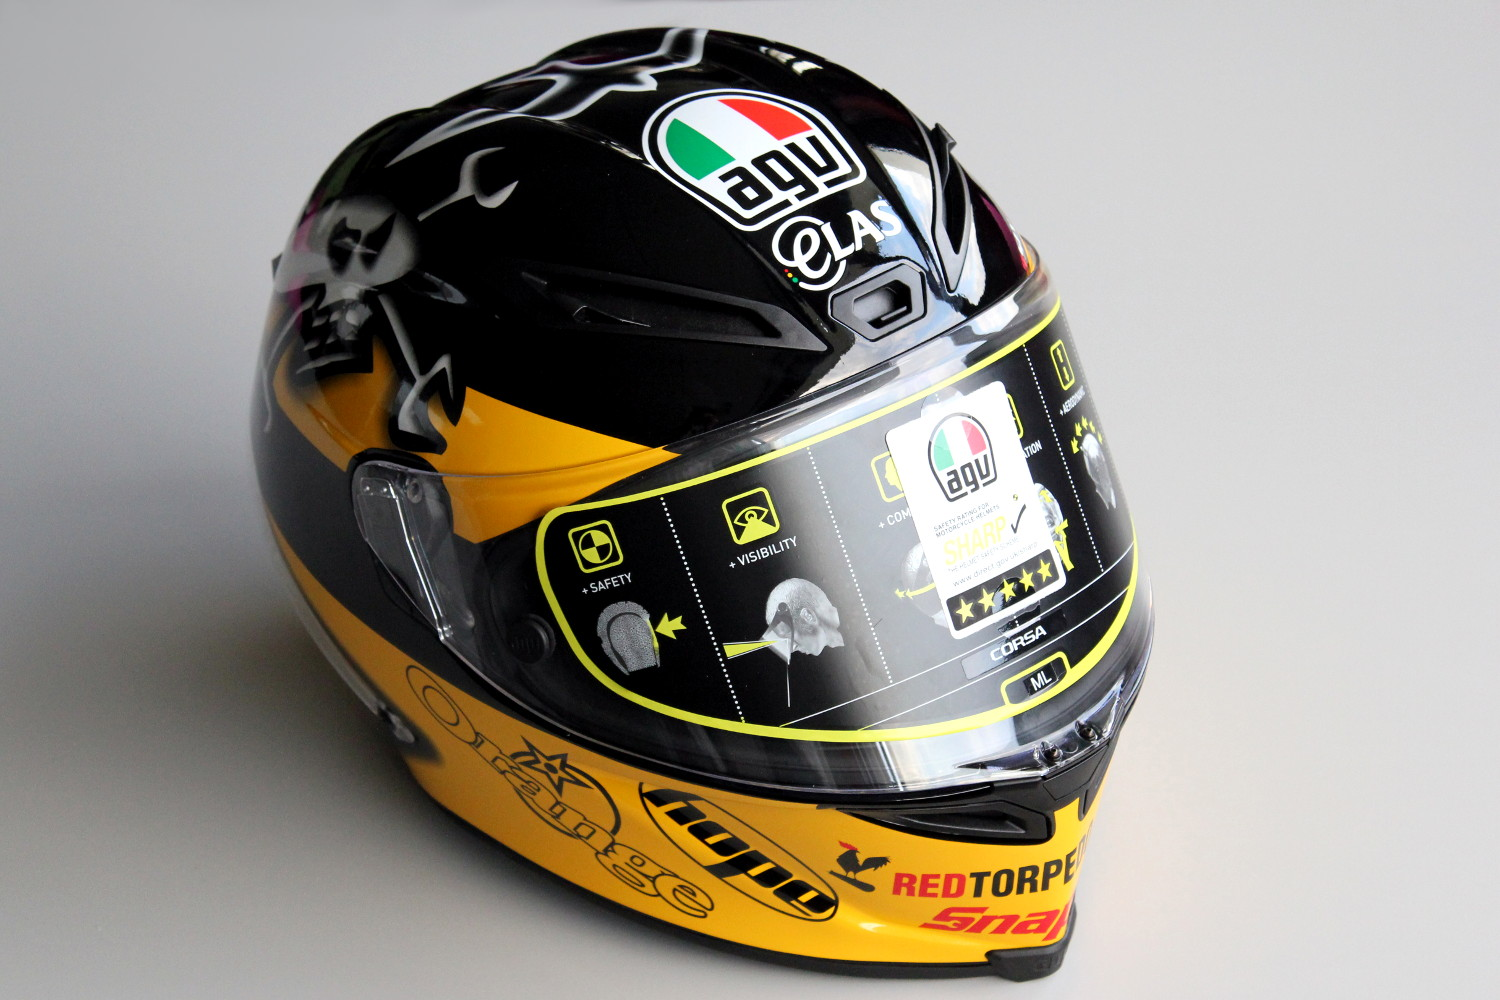 Le casque AGV Corsa replica Guy Martin